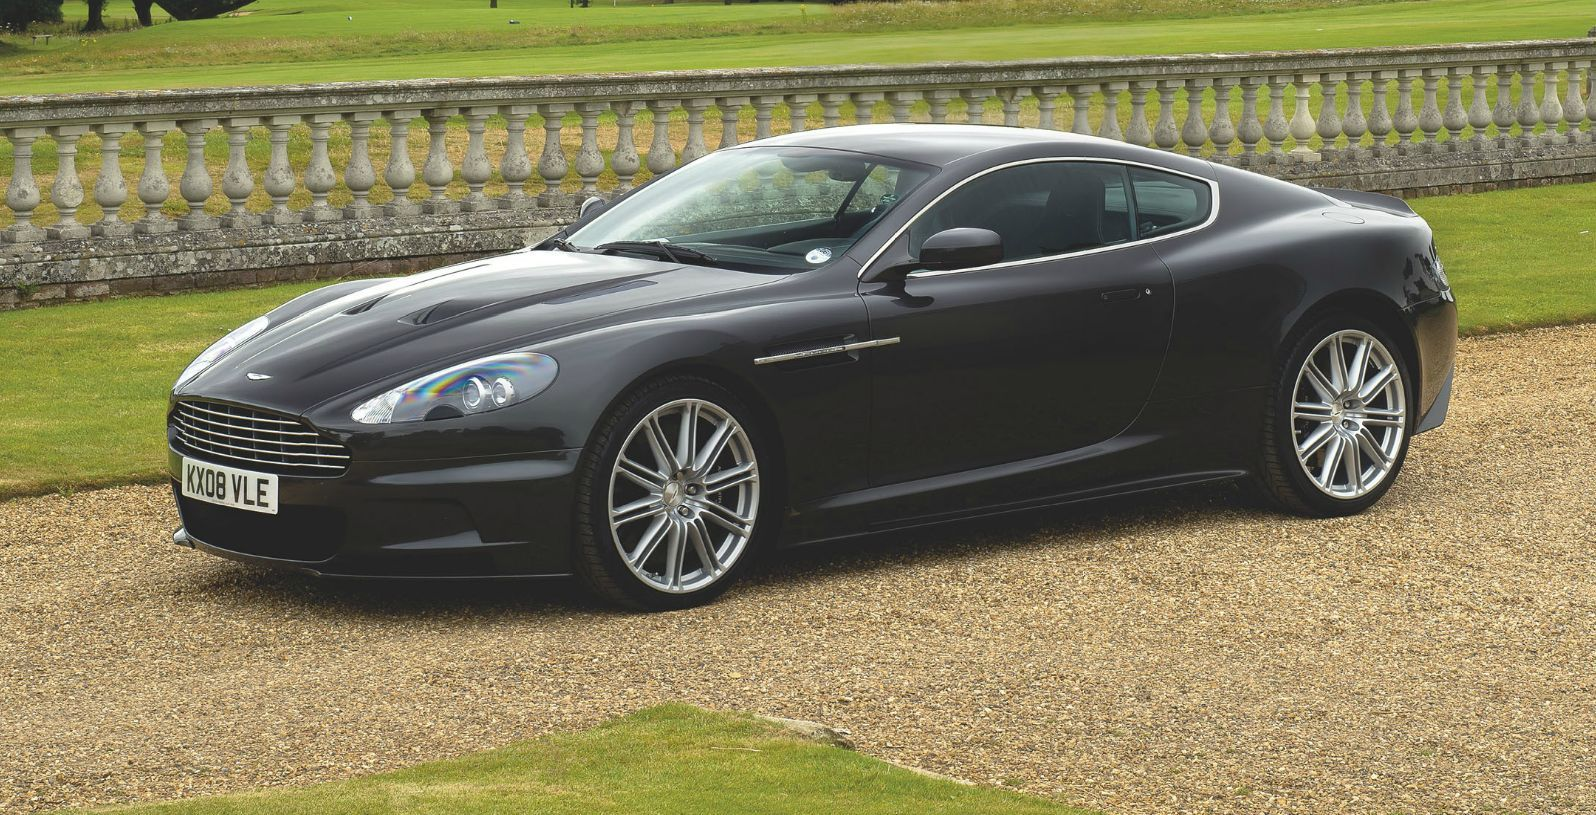 The Aston Martin Dbs Used In 2008 James Bond Film Quantum Of Solace Sold For On Friday Evening With Proceeds From Going To British